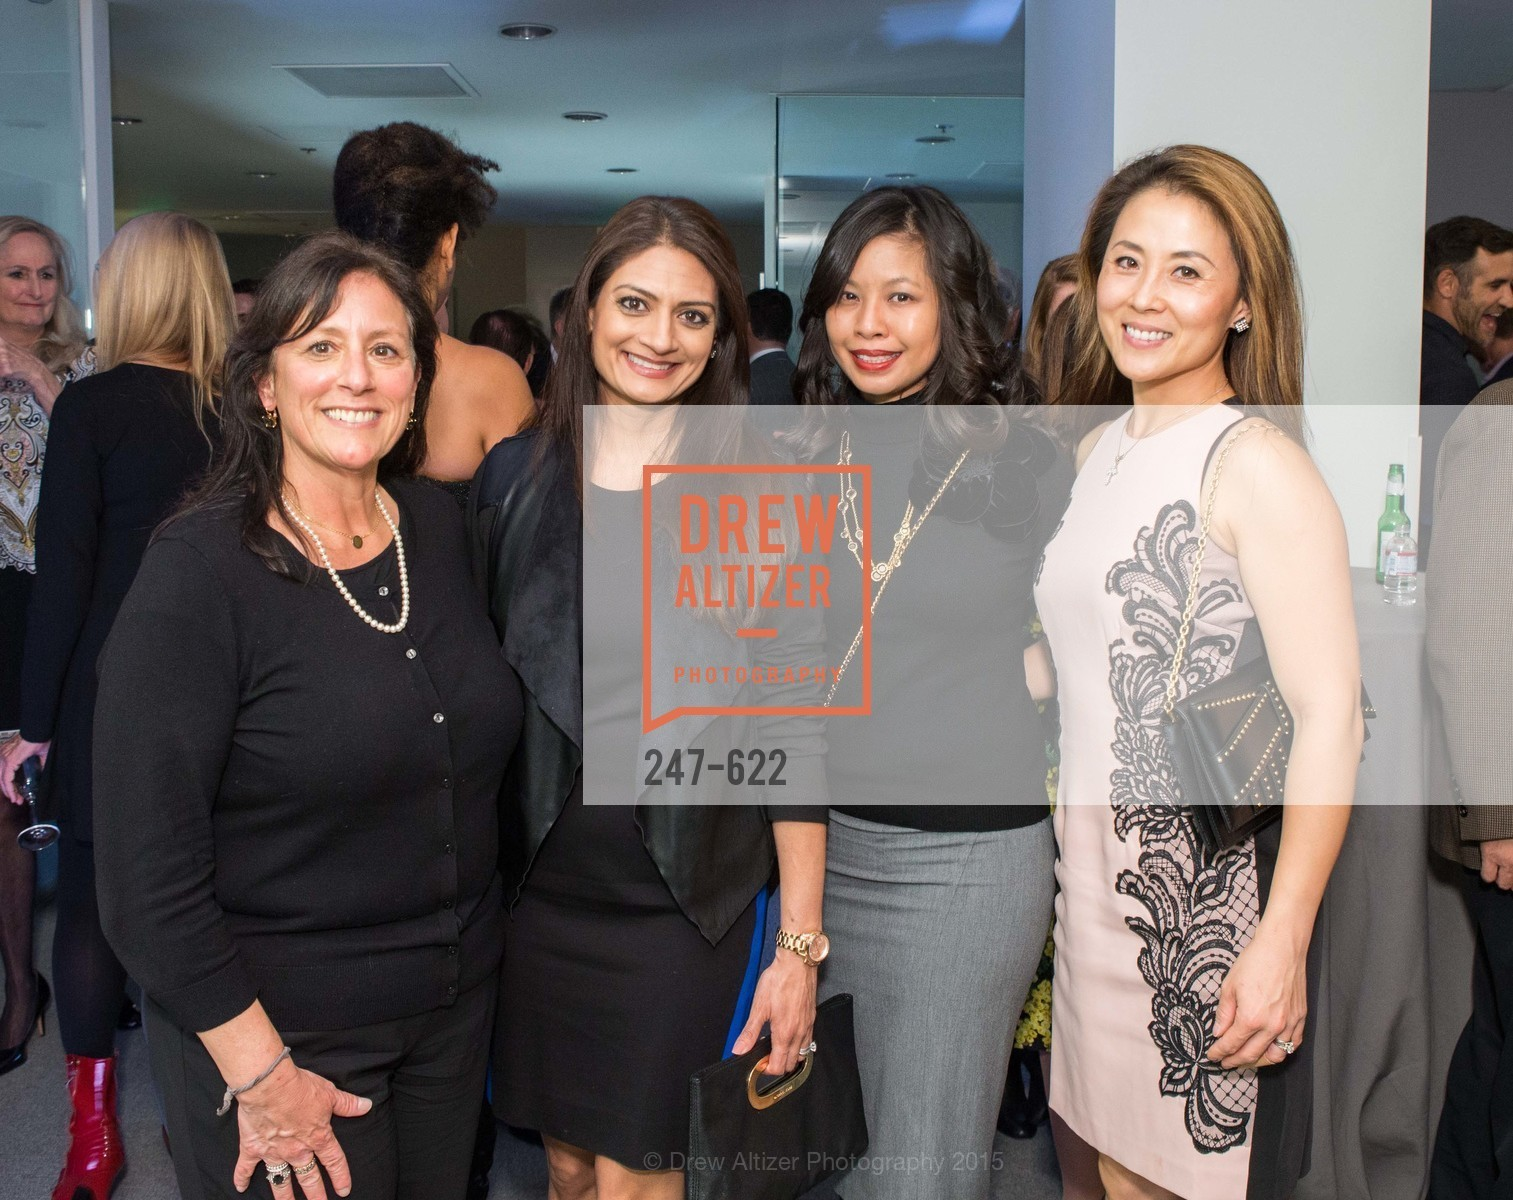 Gina Haggarty, Hina Maheshwari, Rodhelen Liao, Ting Conway, Pacific Union's Club 1699, Pacific Union. 1699 Van Ness Ave, December 3rd, 2015,Drew Altizer, Drew Altizer Photography, full-service agency, private events, San Francisco photographer, photographer california